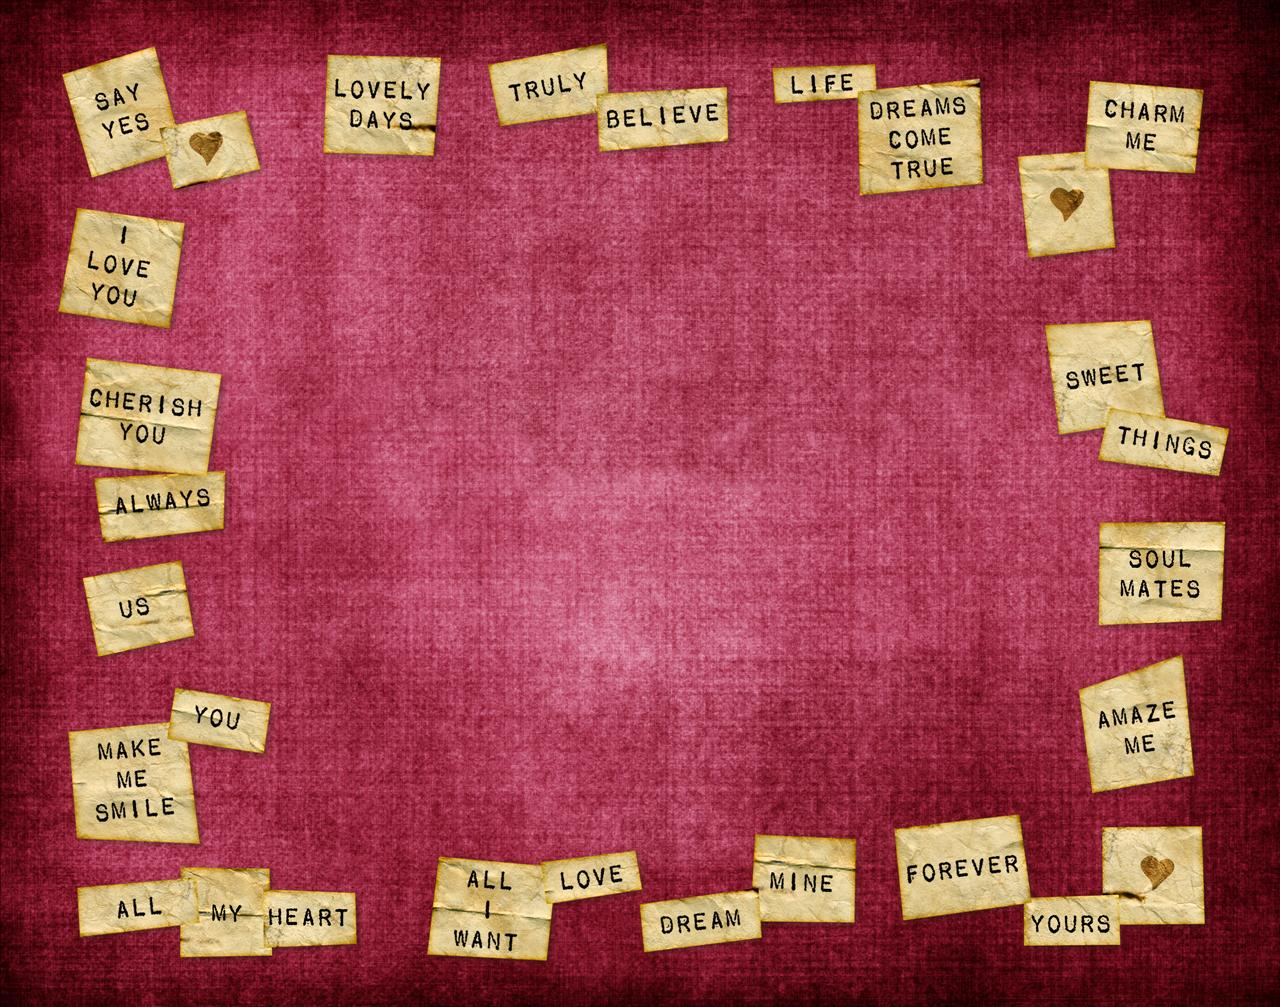 The Real Secret: Words of Love